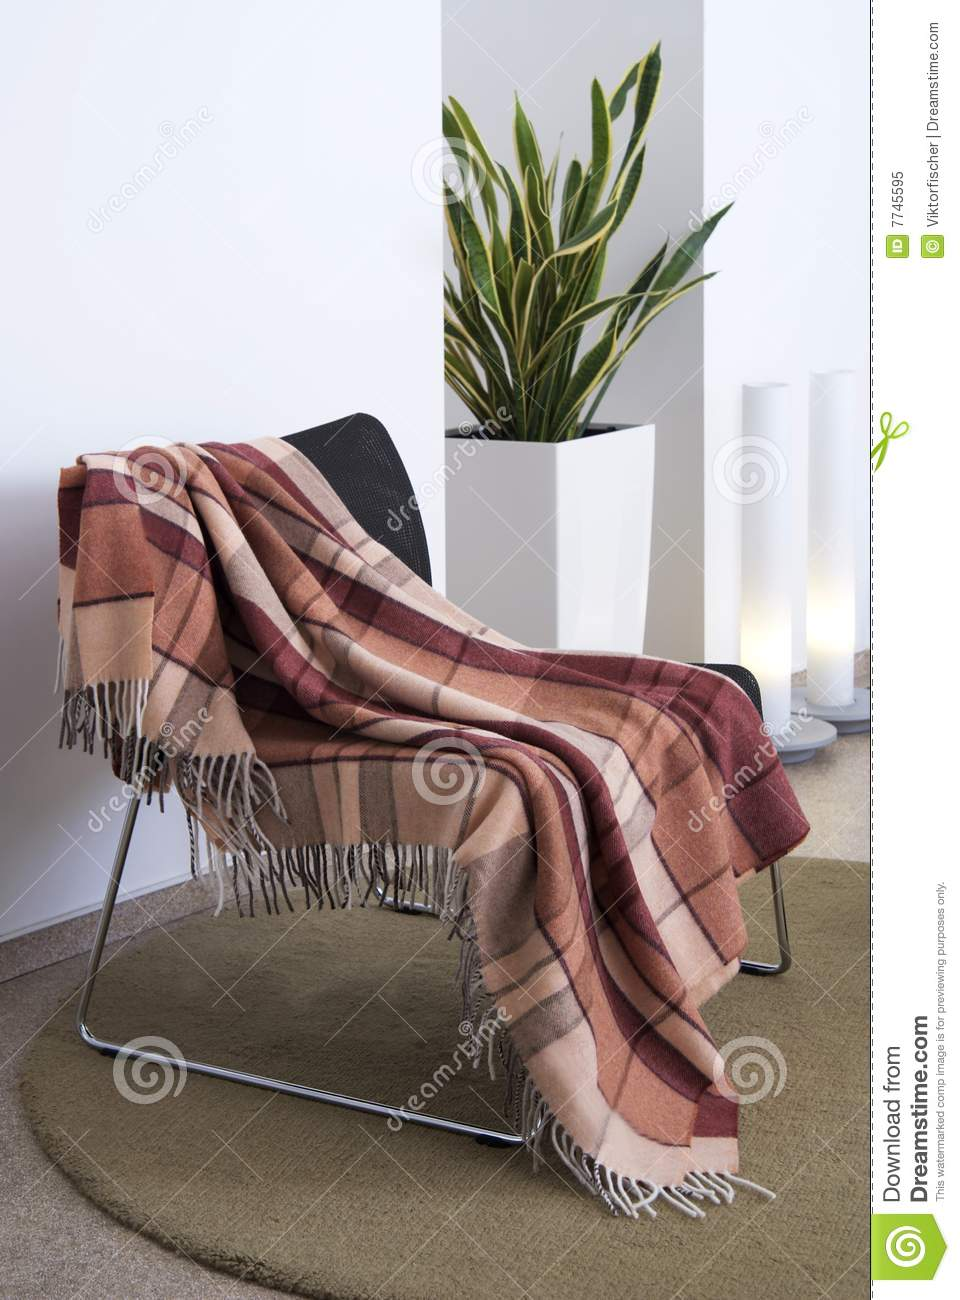 Plaid Draped Over A Chair Royalty Free Stock Photo Image